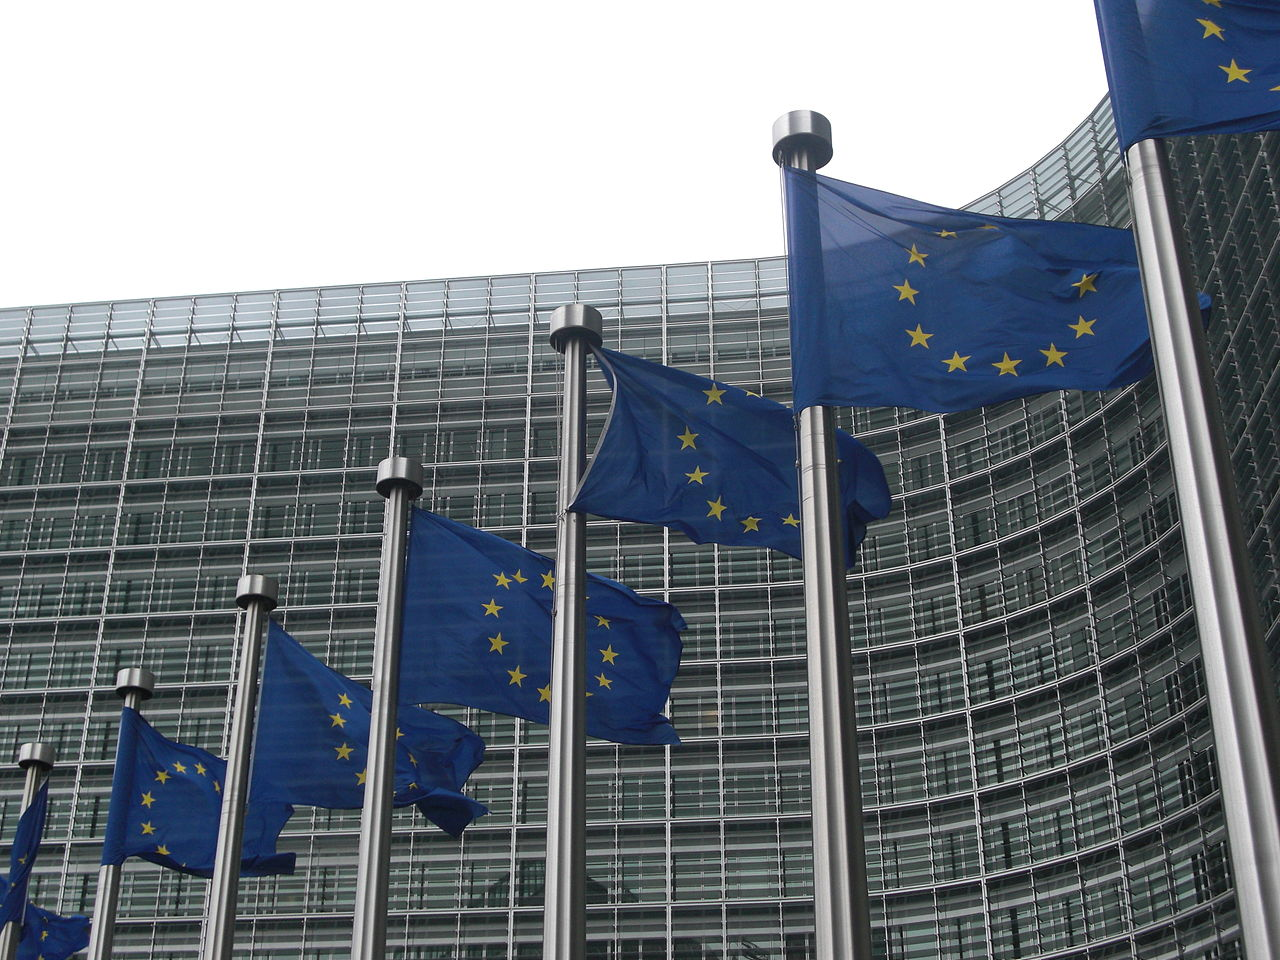 European Commission proposes new agency in anti-money laundering overhaul